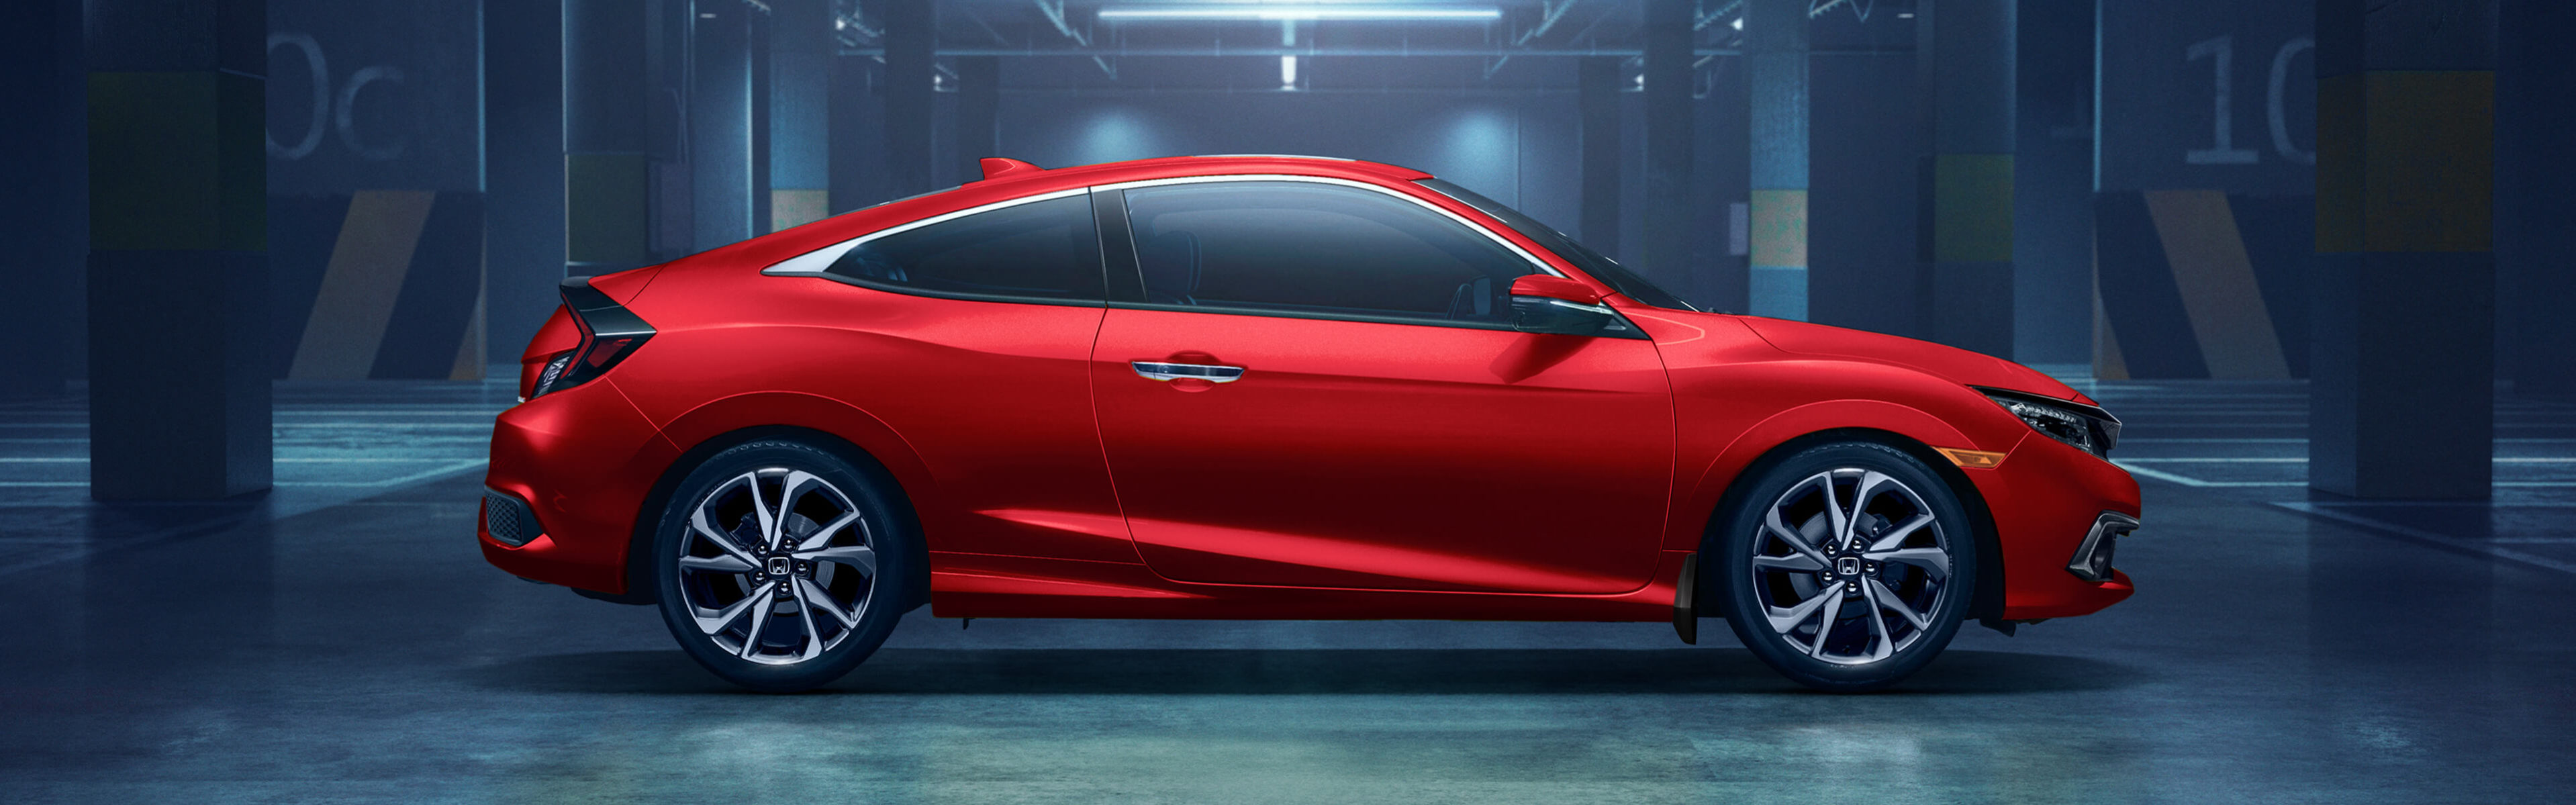 2019 Honda Civic Coupe | Gore Motors Honda